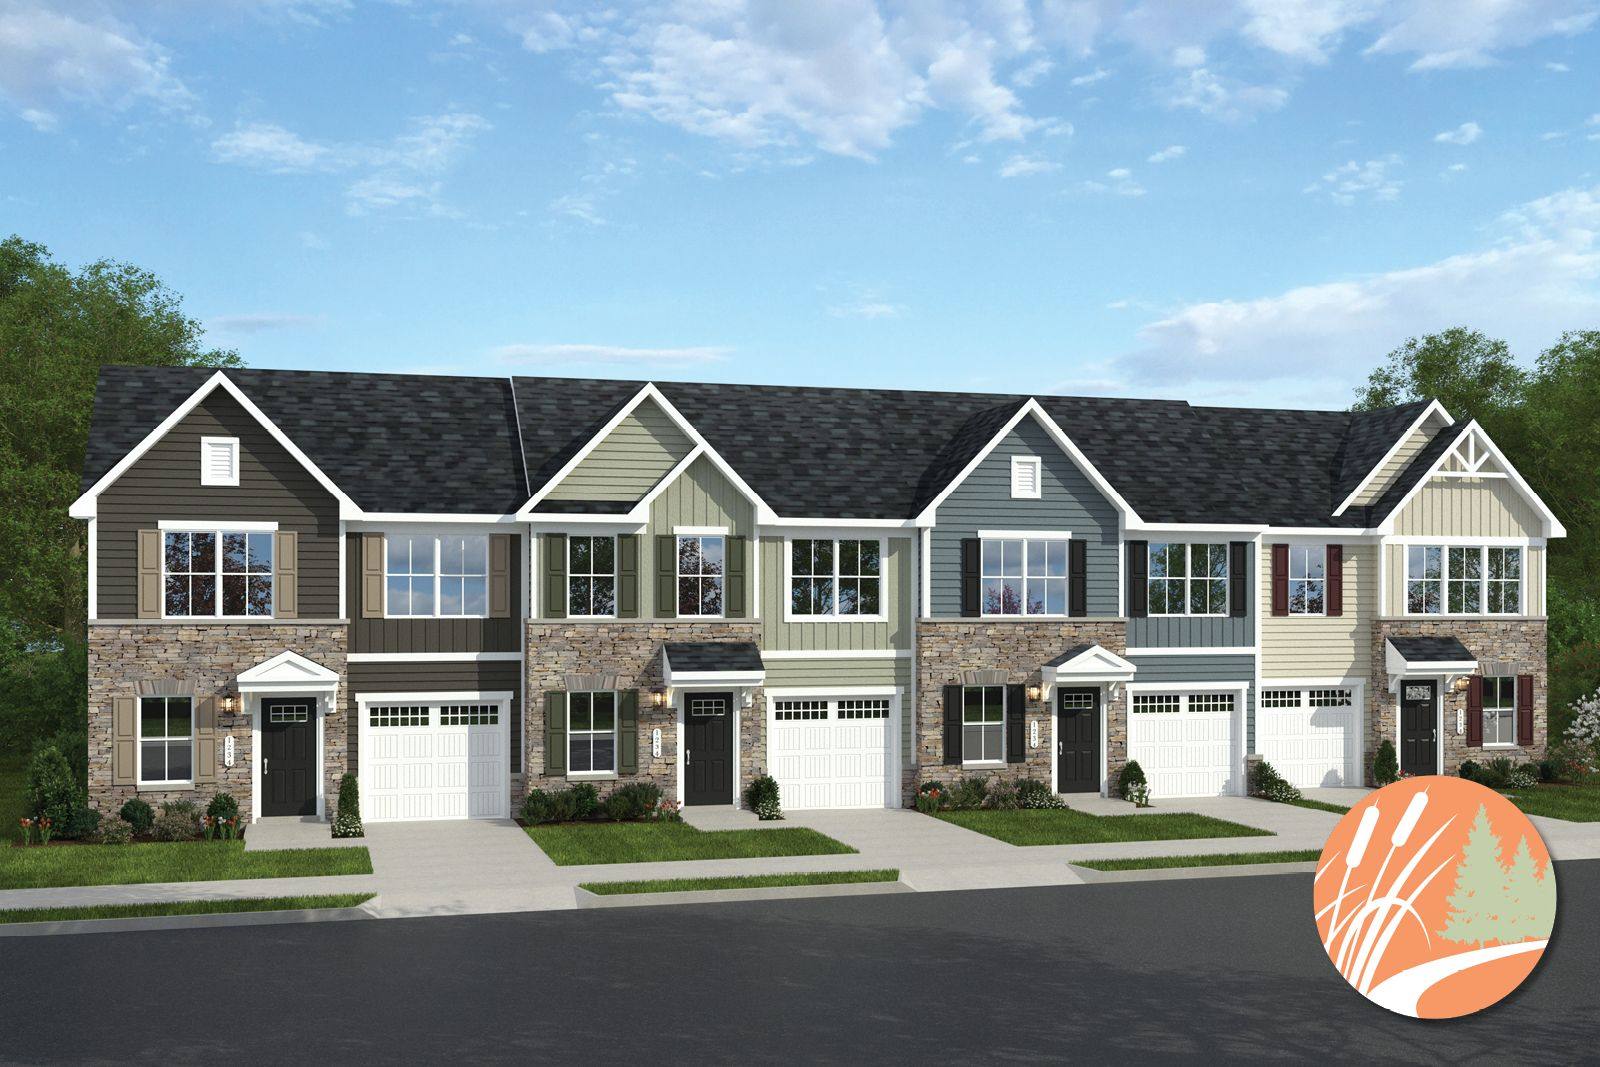 Welcome to Austin Woods Townes:Coming Soon: affordable first-floor owner's suite townes w/ private backyards & attached garages! Live a low-maintenance lifestyle on Rt 10, close to I-95 & 288.Click here to become a VIP